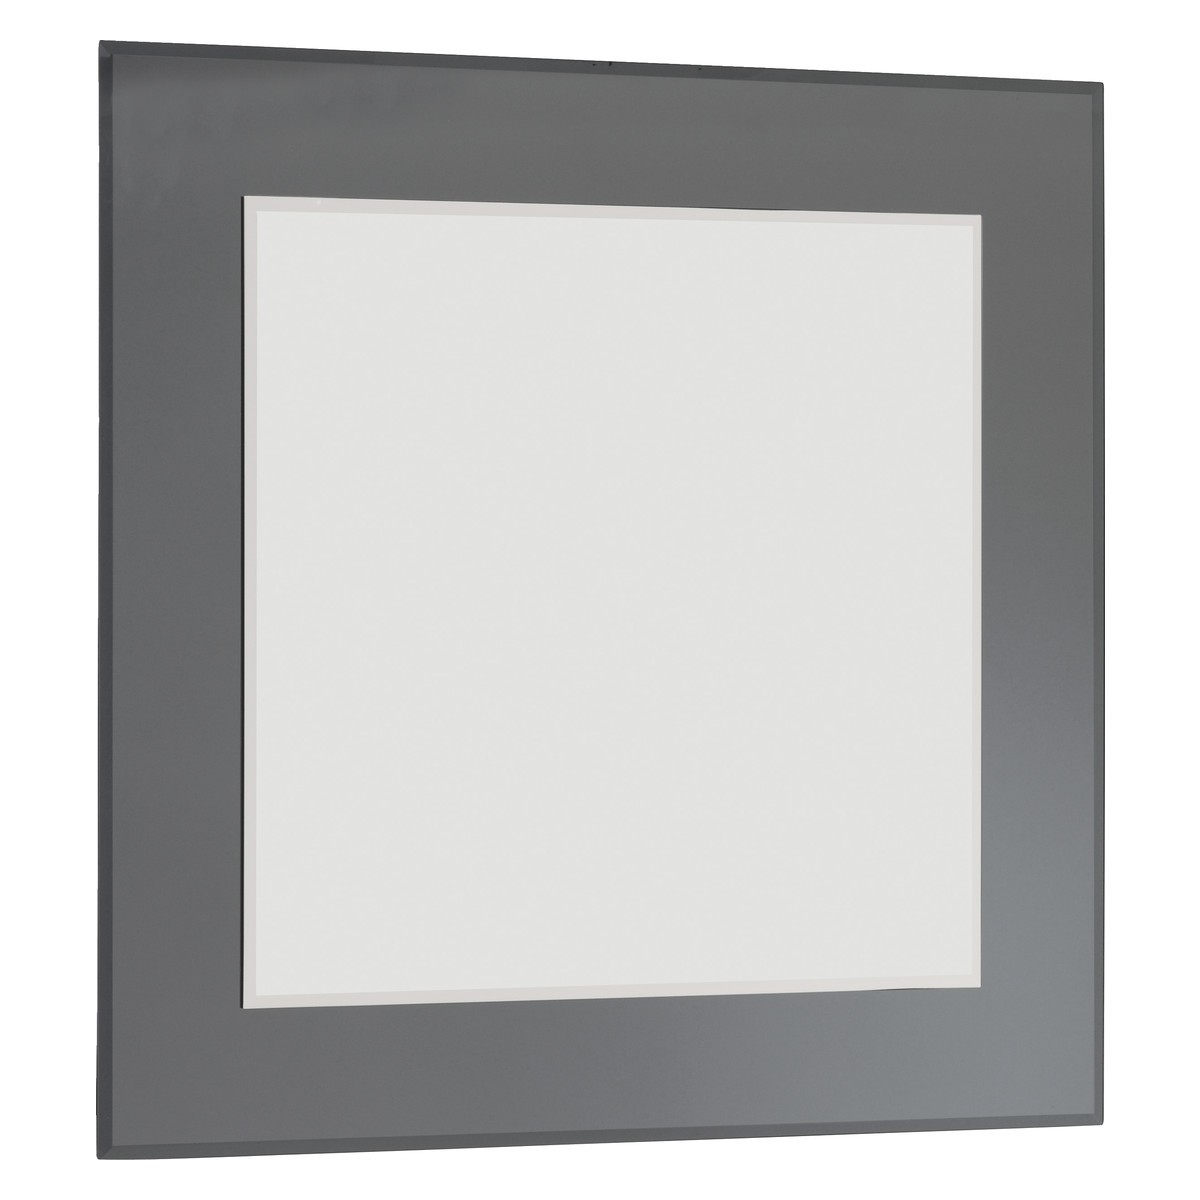 Lay 90 X 90cm Grey Square Wall Mirror Buy Now At Habitat Uk With Buy A Mirror (Image 13 of 15)